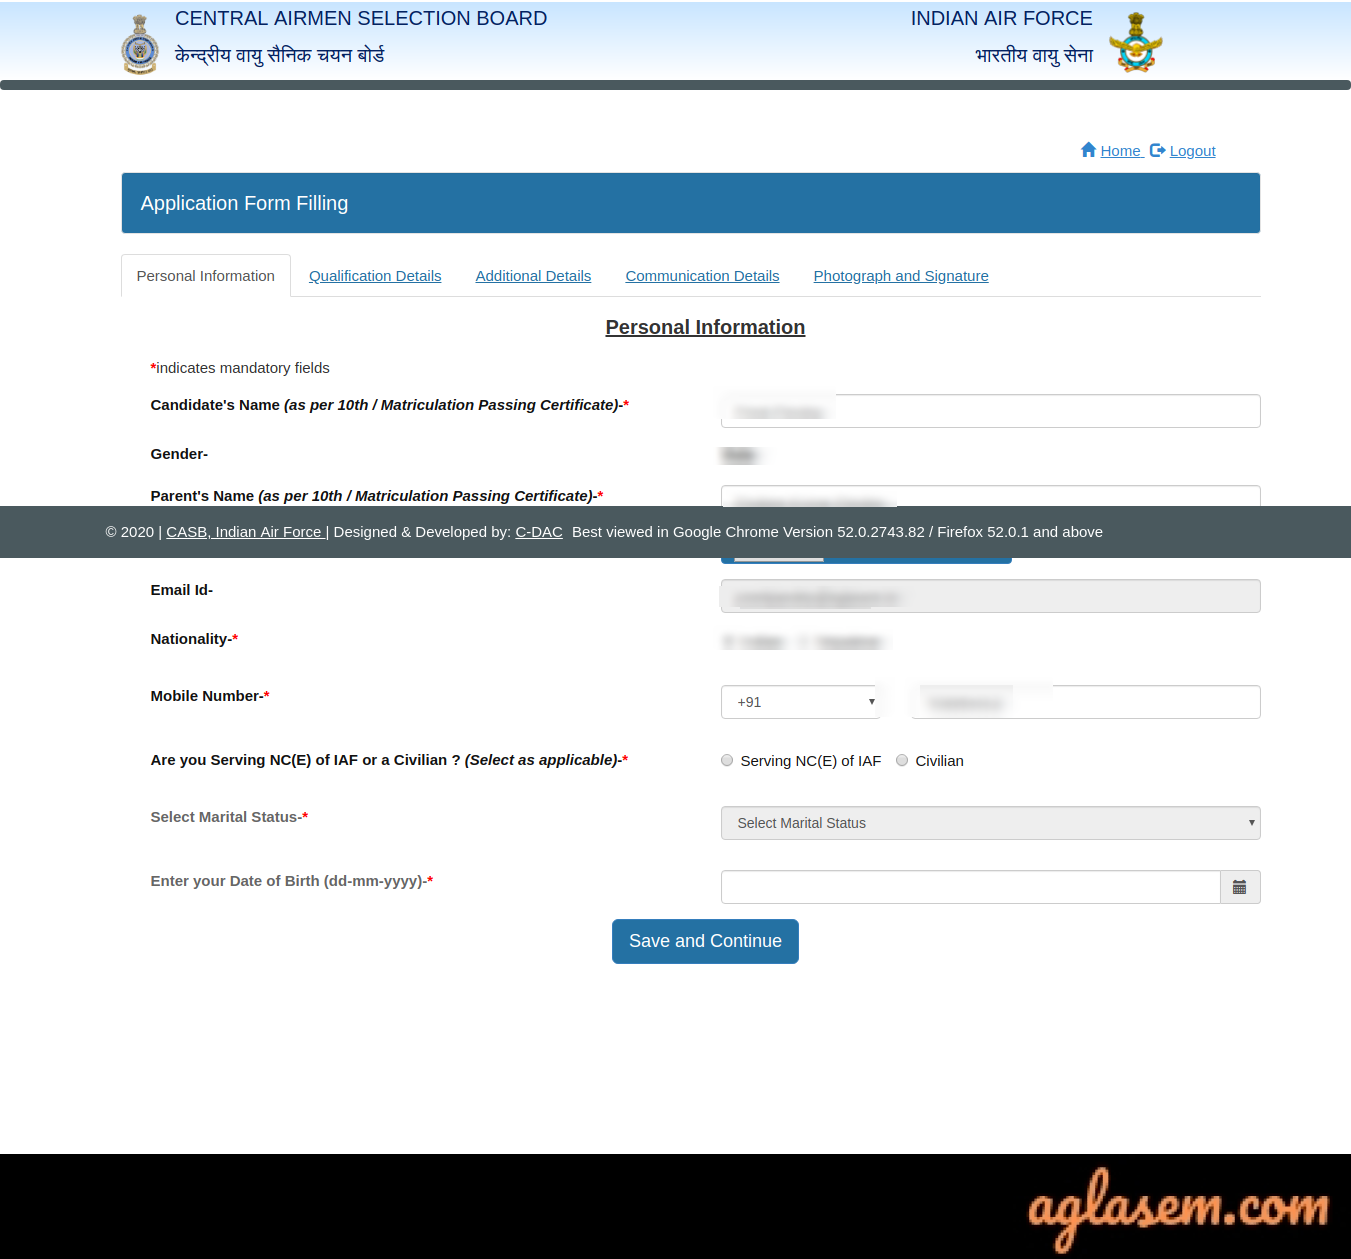 Indian Air Force Airmen Application Form 2020 for 02/2021 – Apply @airmenselection.cdac.in